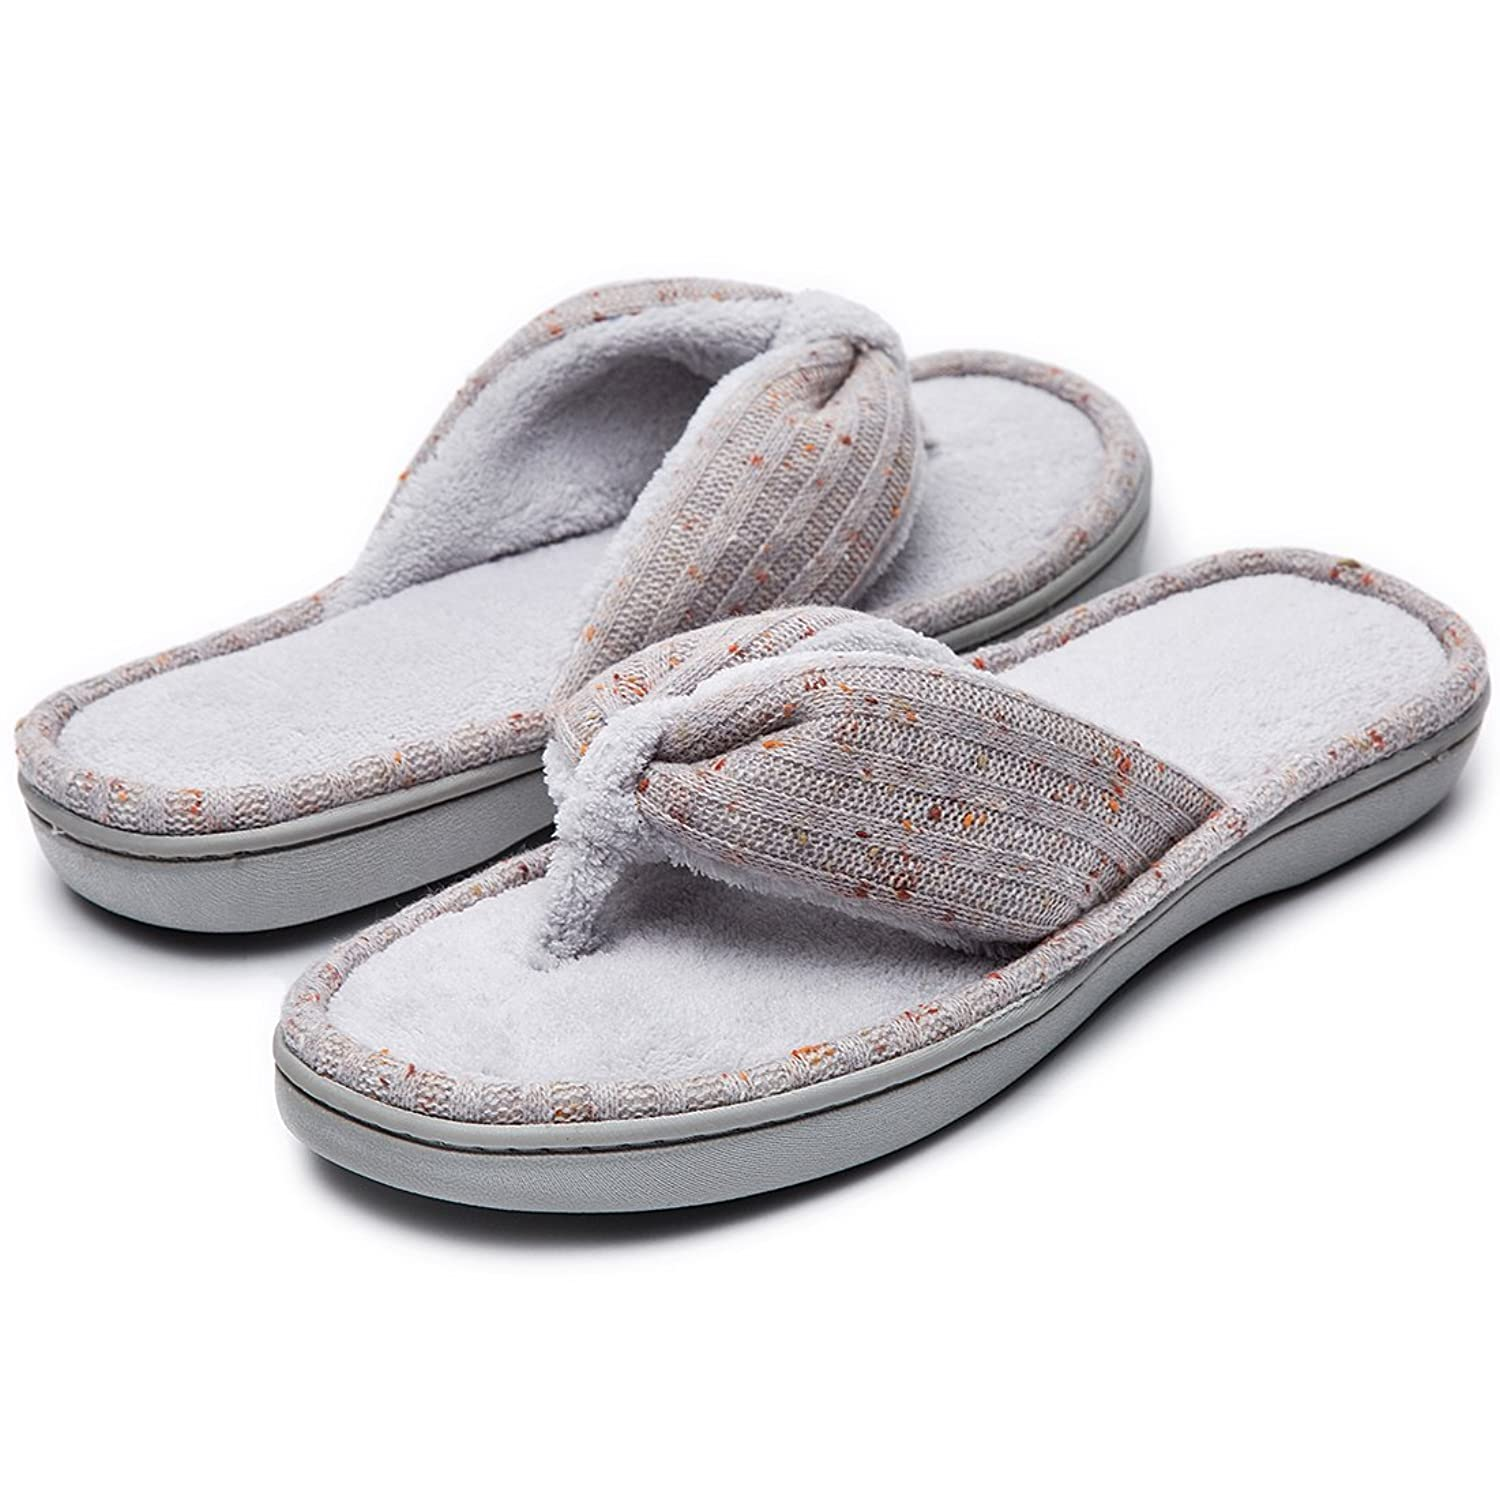 57c9cfe4df177a HomeTop Ladies  Soft   Comfy Knitted Plush Fleece Lining Memory Foam Spa  Thong Flip Flops House Slippers  Amazon.co.uk  Shoes   Bags